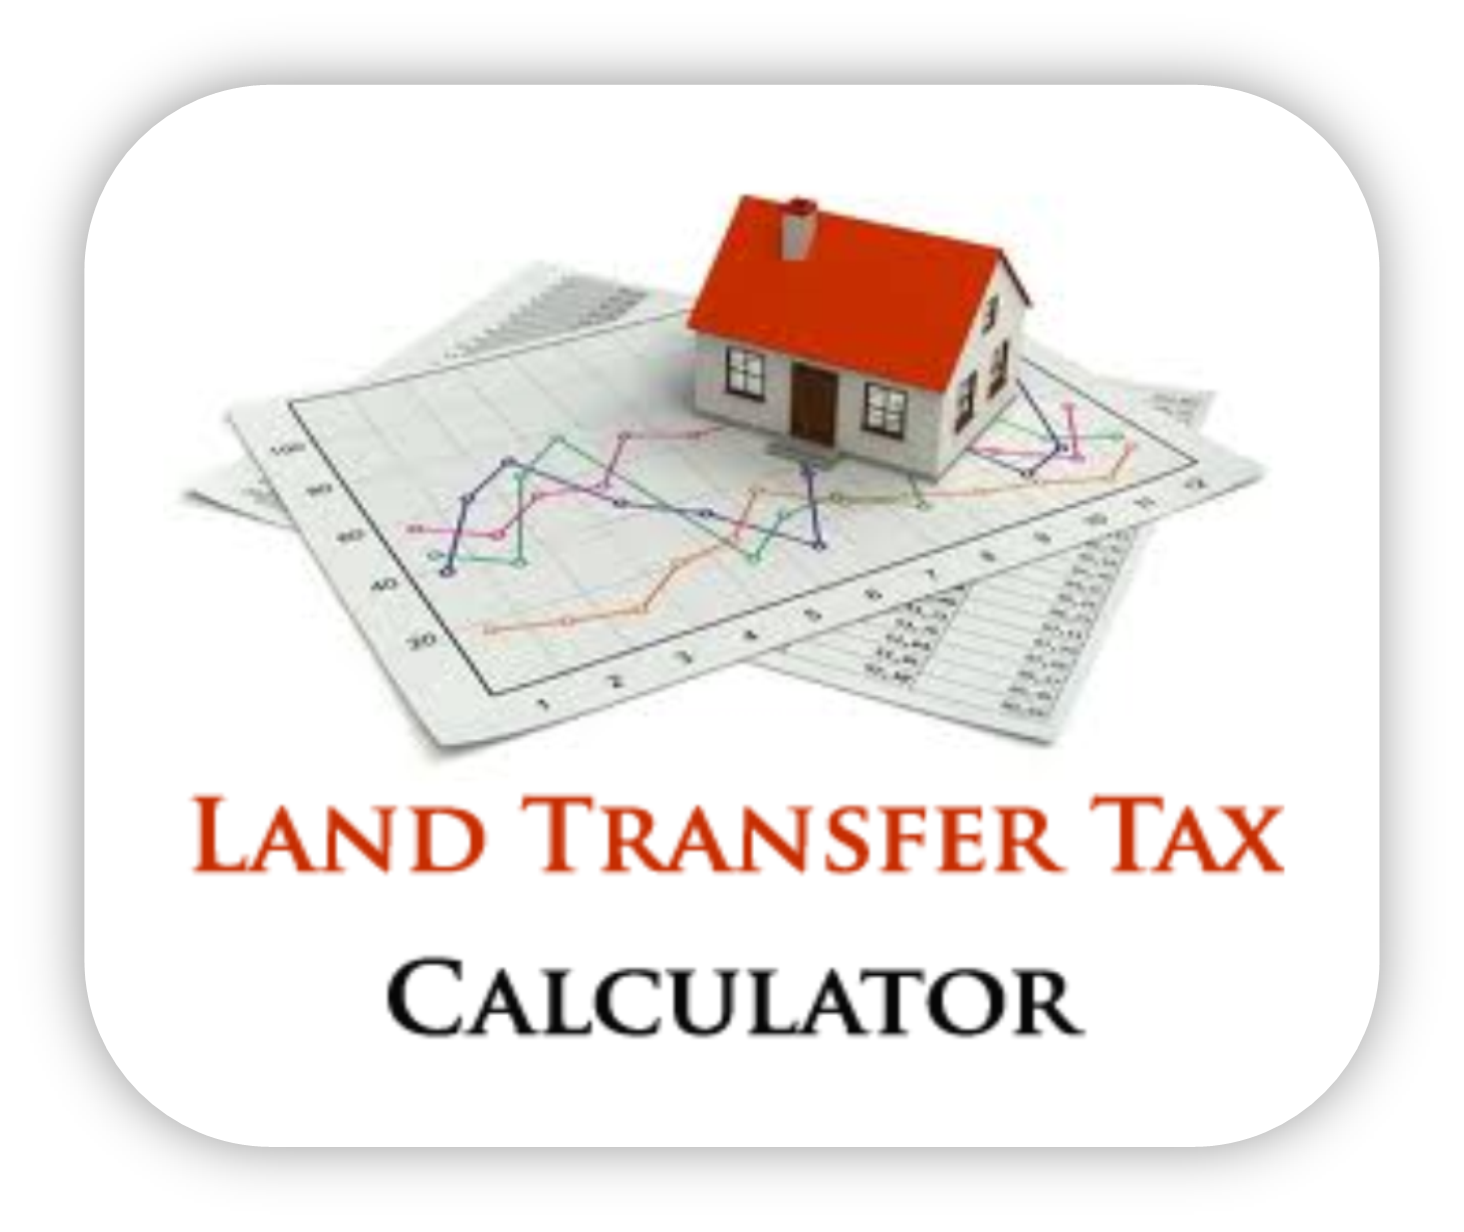 Land Transfer Tax Calculator2.png